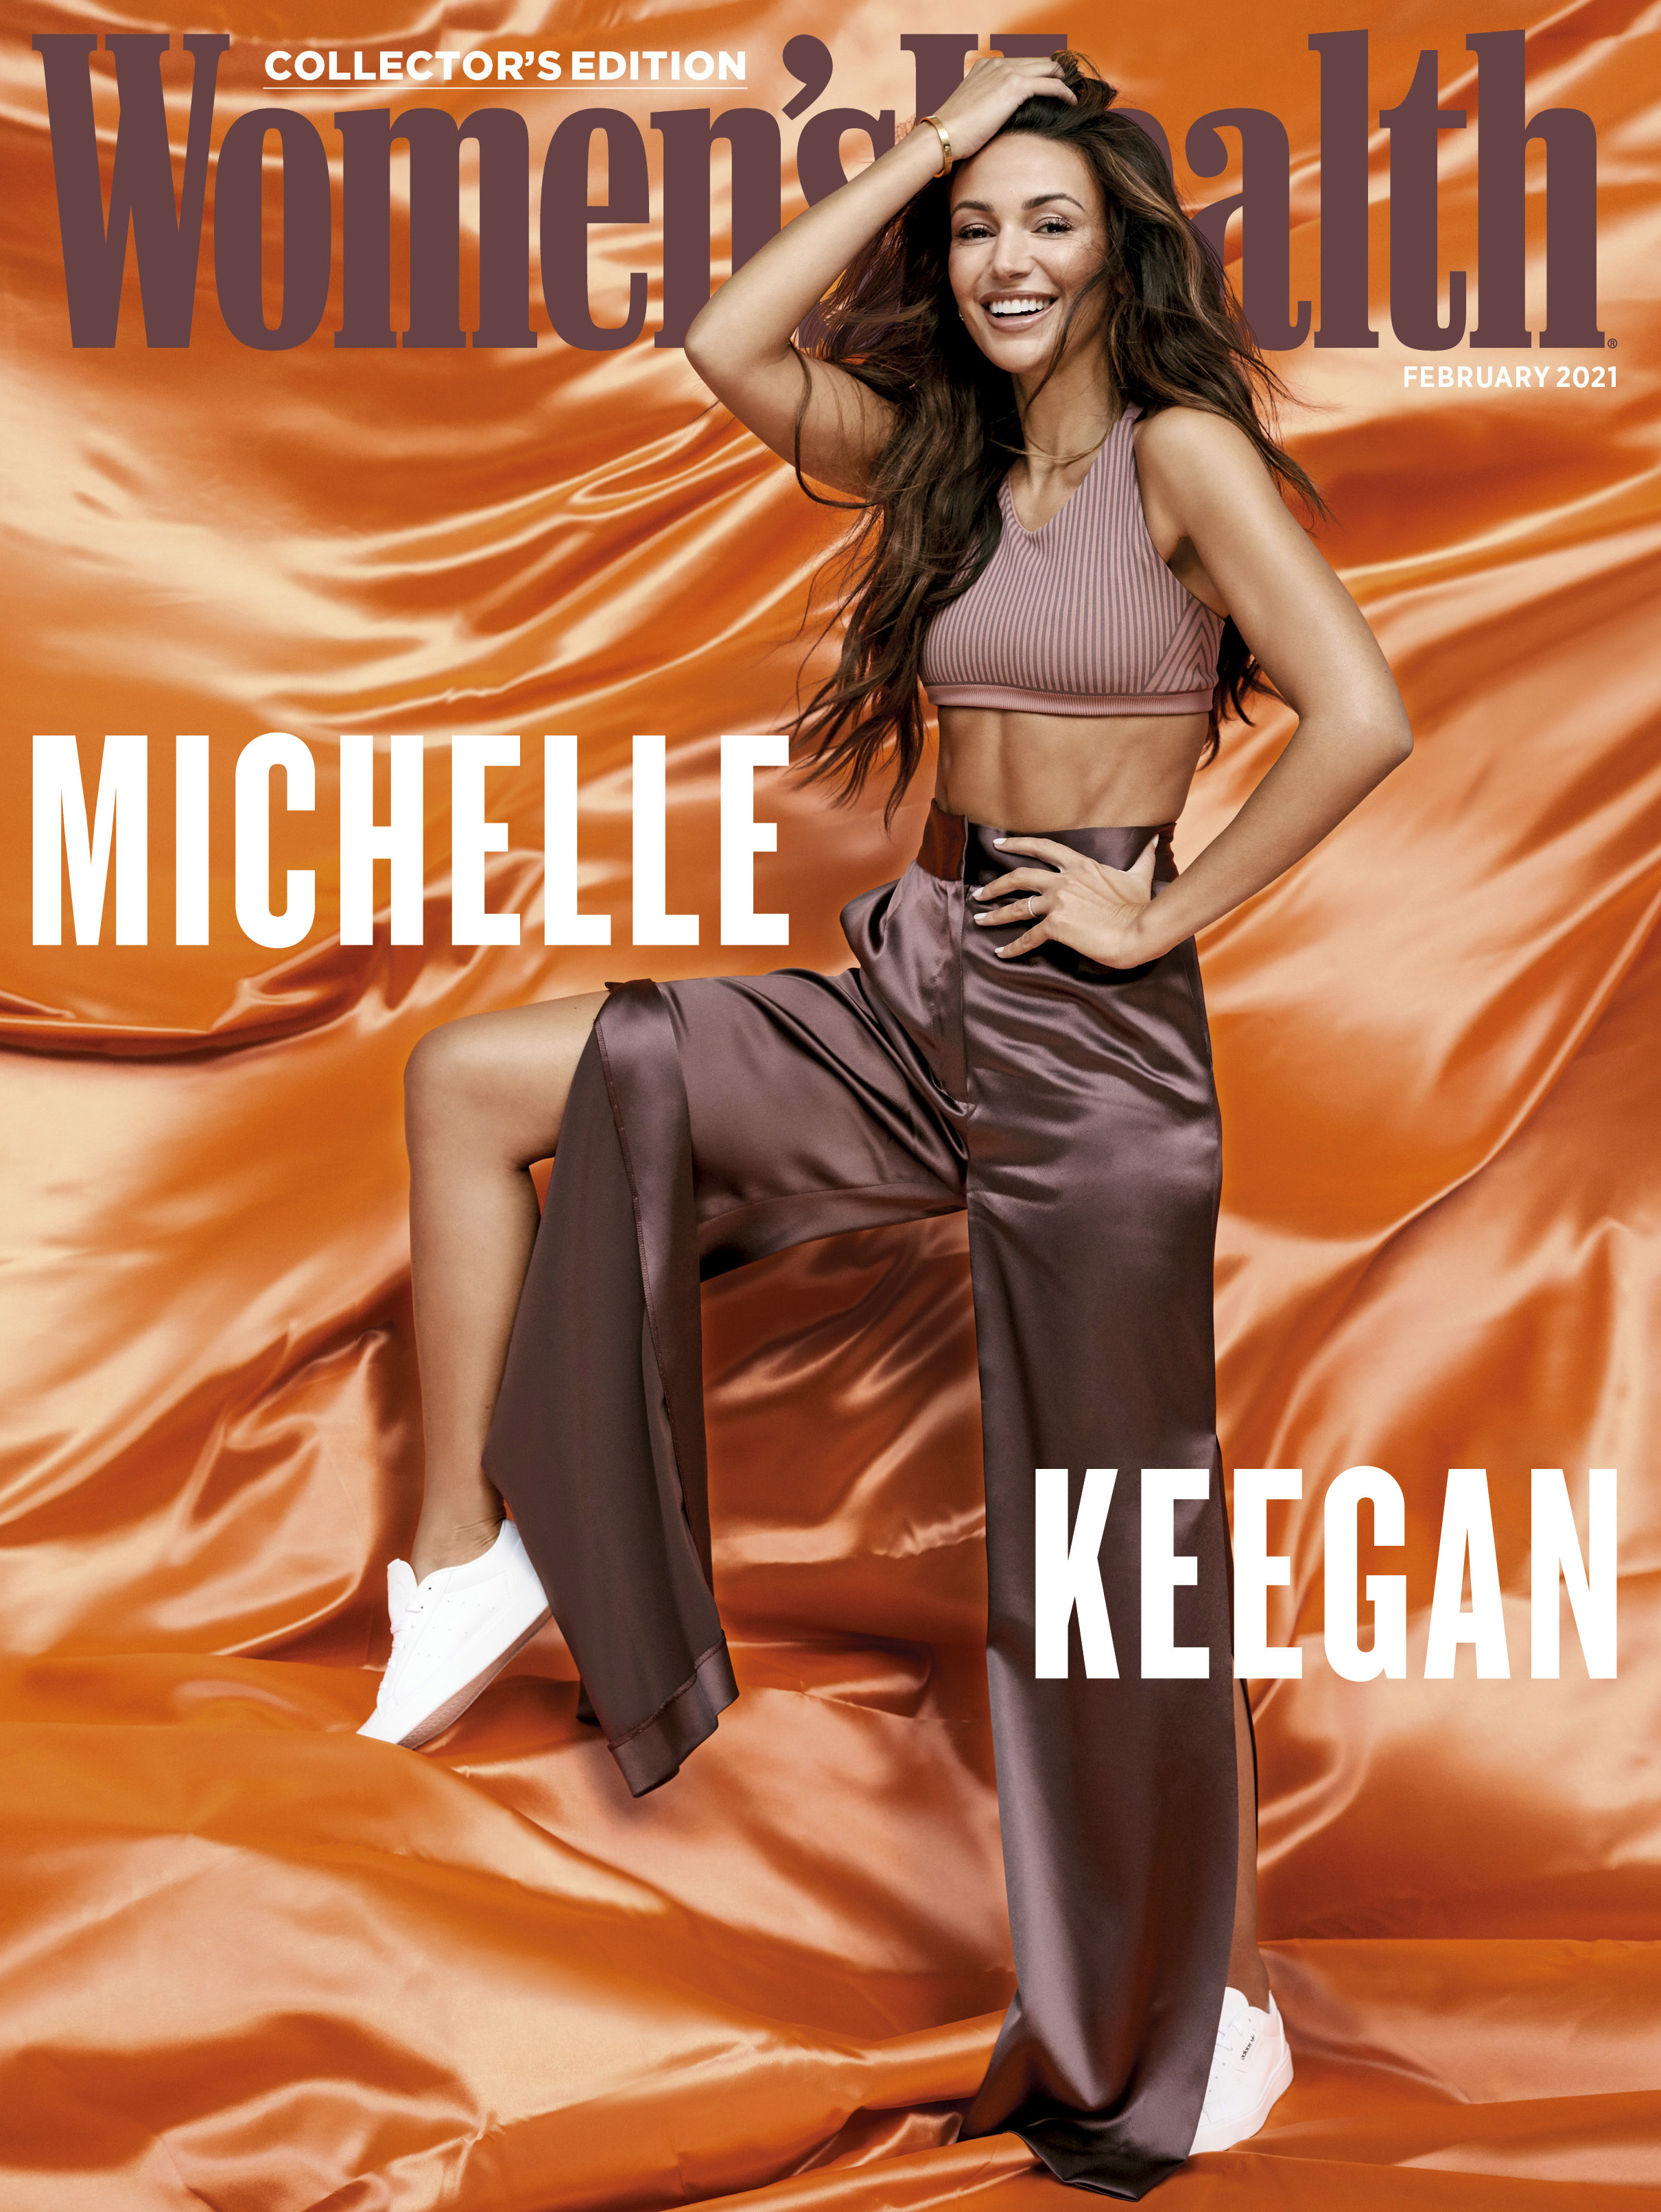 Women's Health cover photographed by Peter Pedonomou